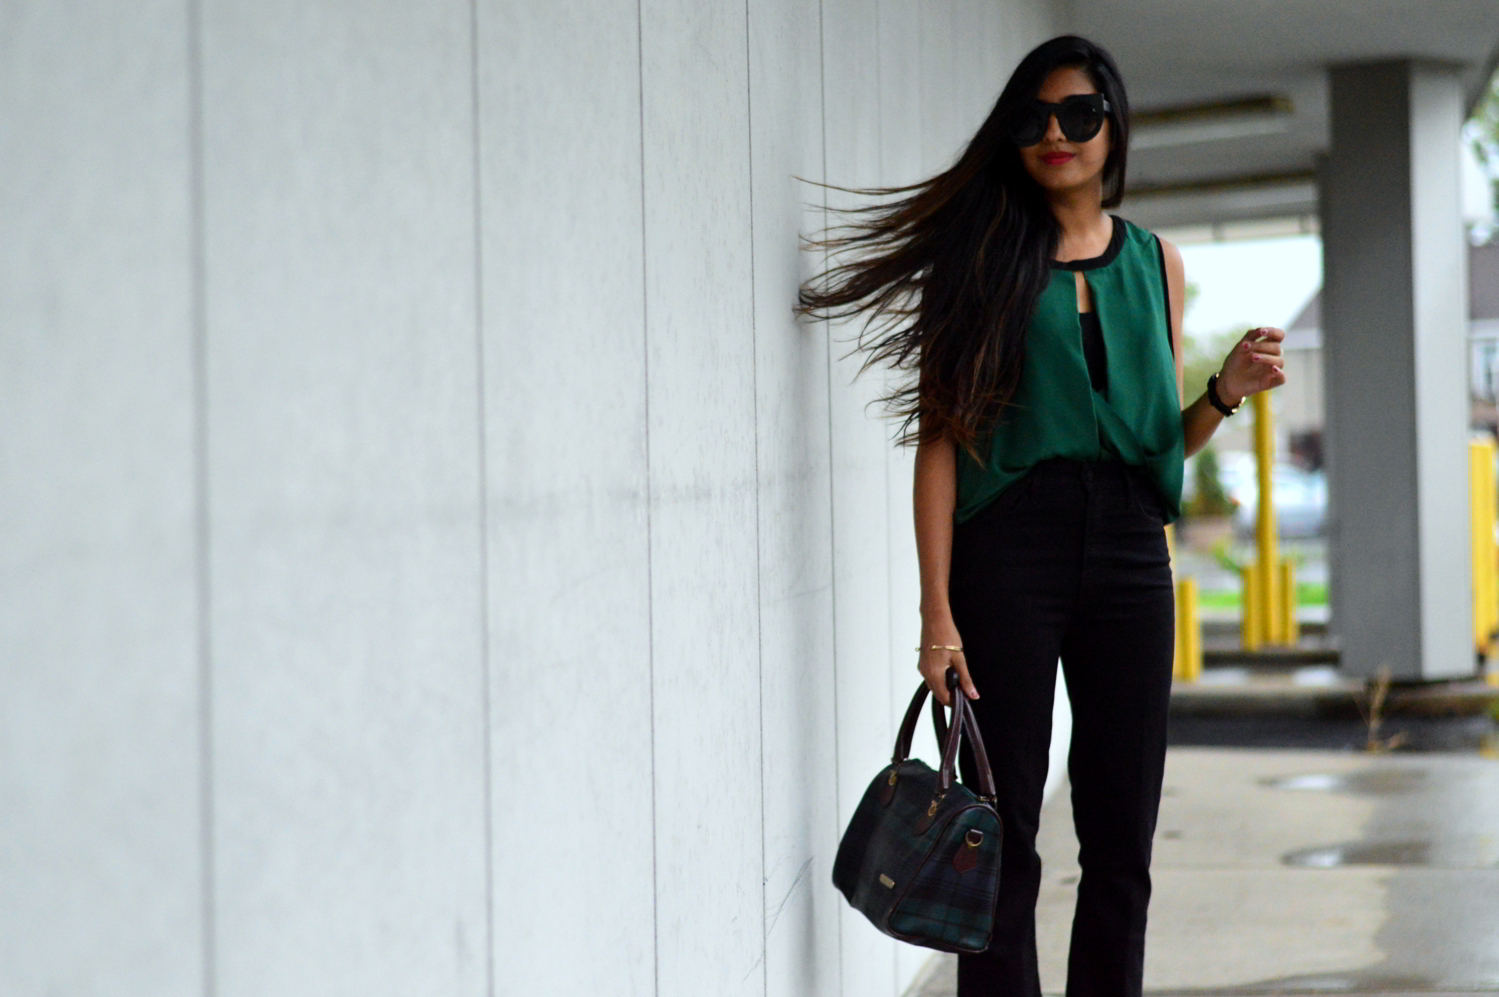 workwear-fall-style-emerald-silk-blouse-cropped-flared-jeans 5